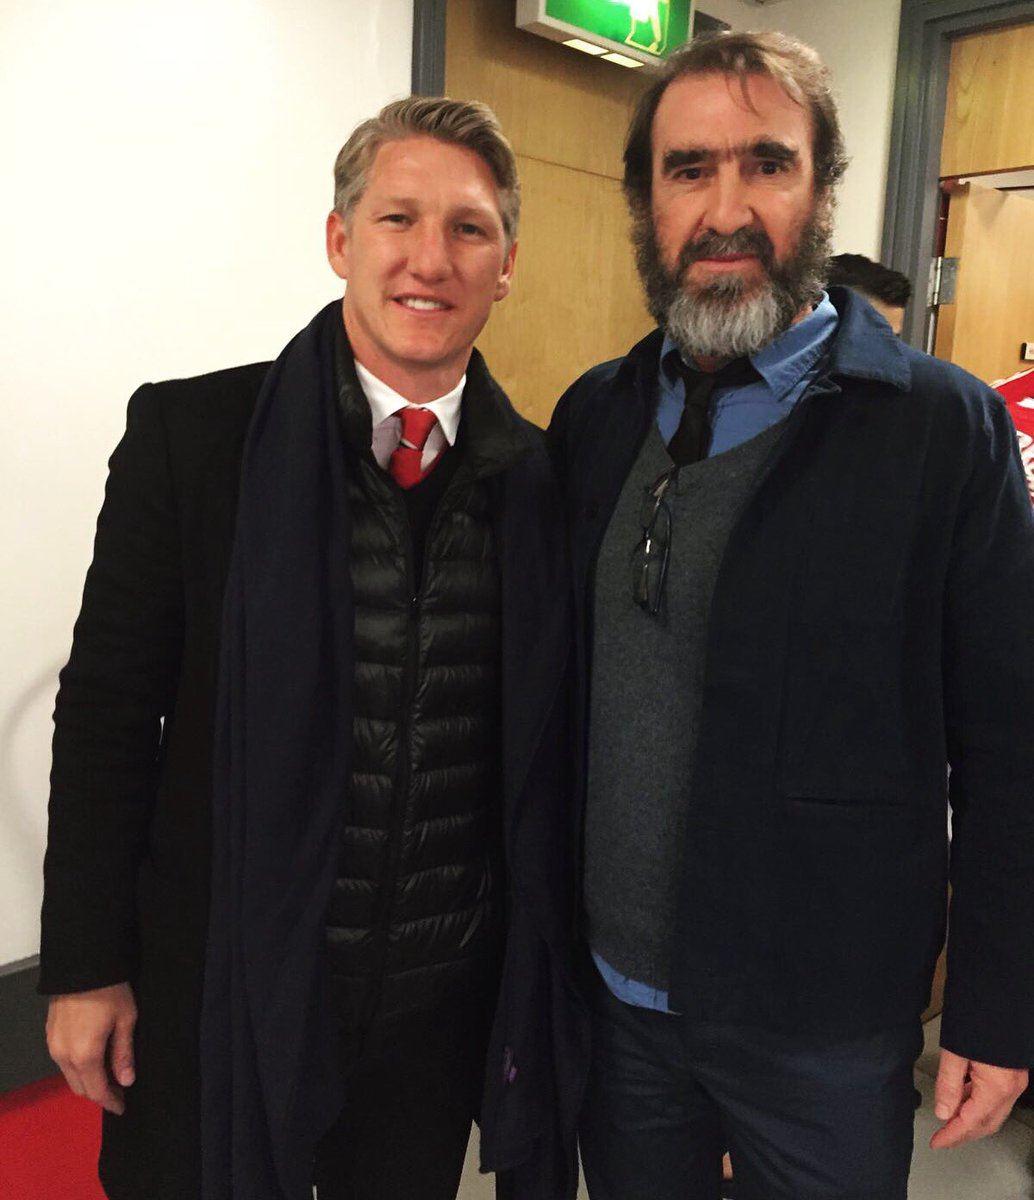 He was one of manchester. Bastian Schweinsteiger On Twitter Met Eric Cantona Today One Of My Favorite Players When I Was A Child Legend Mufc